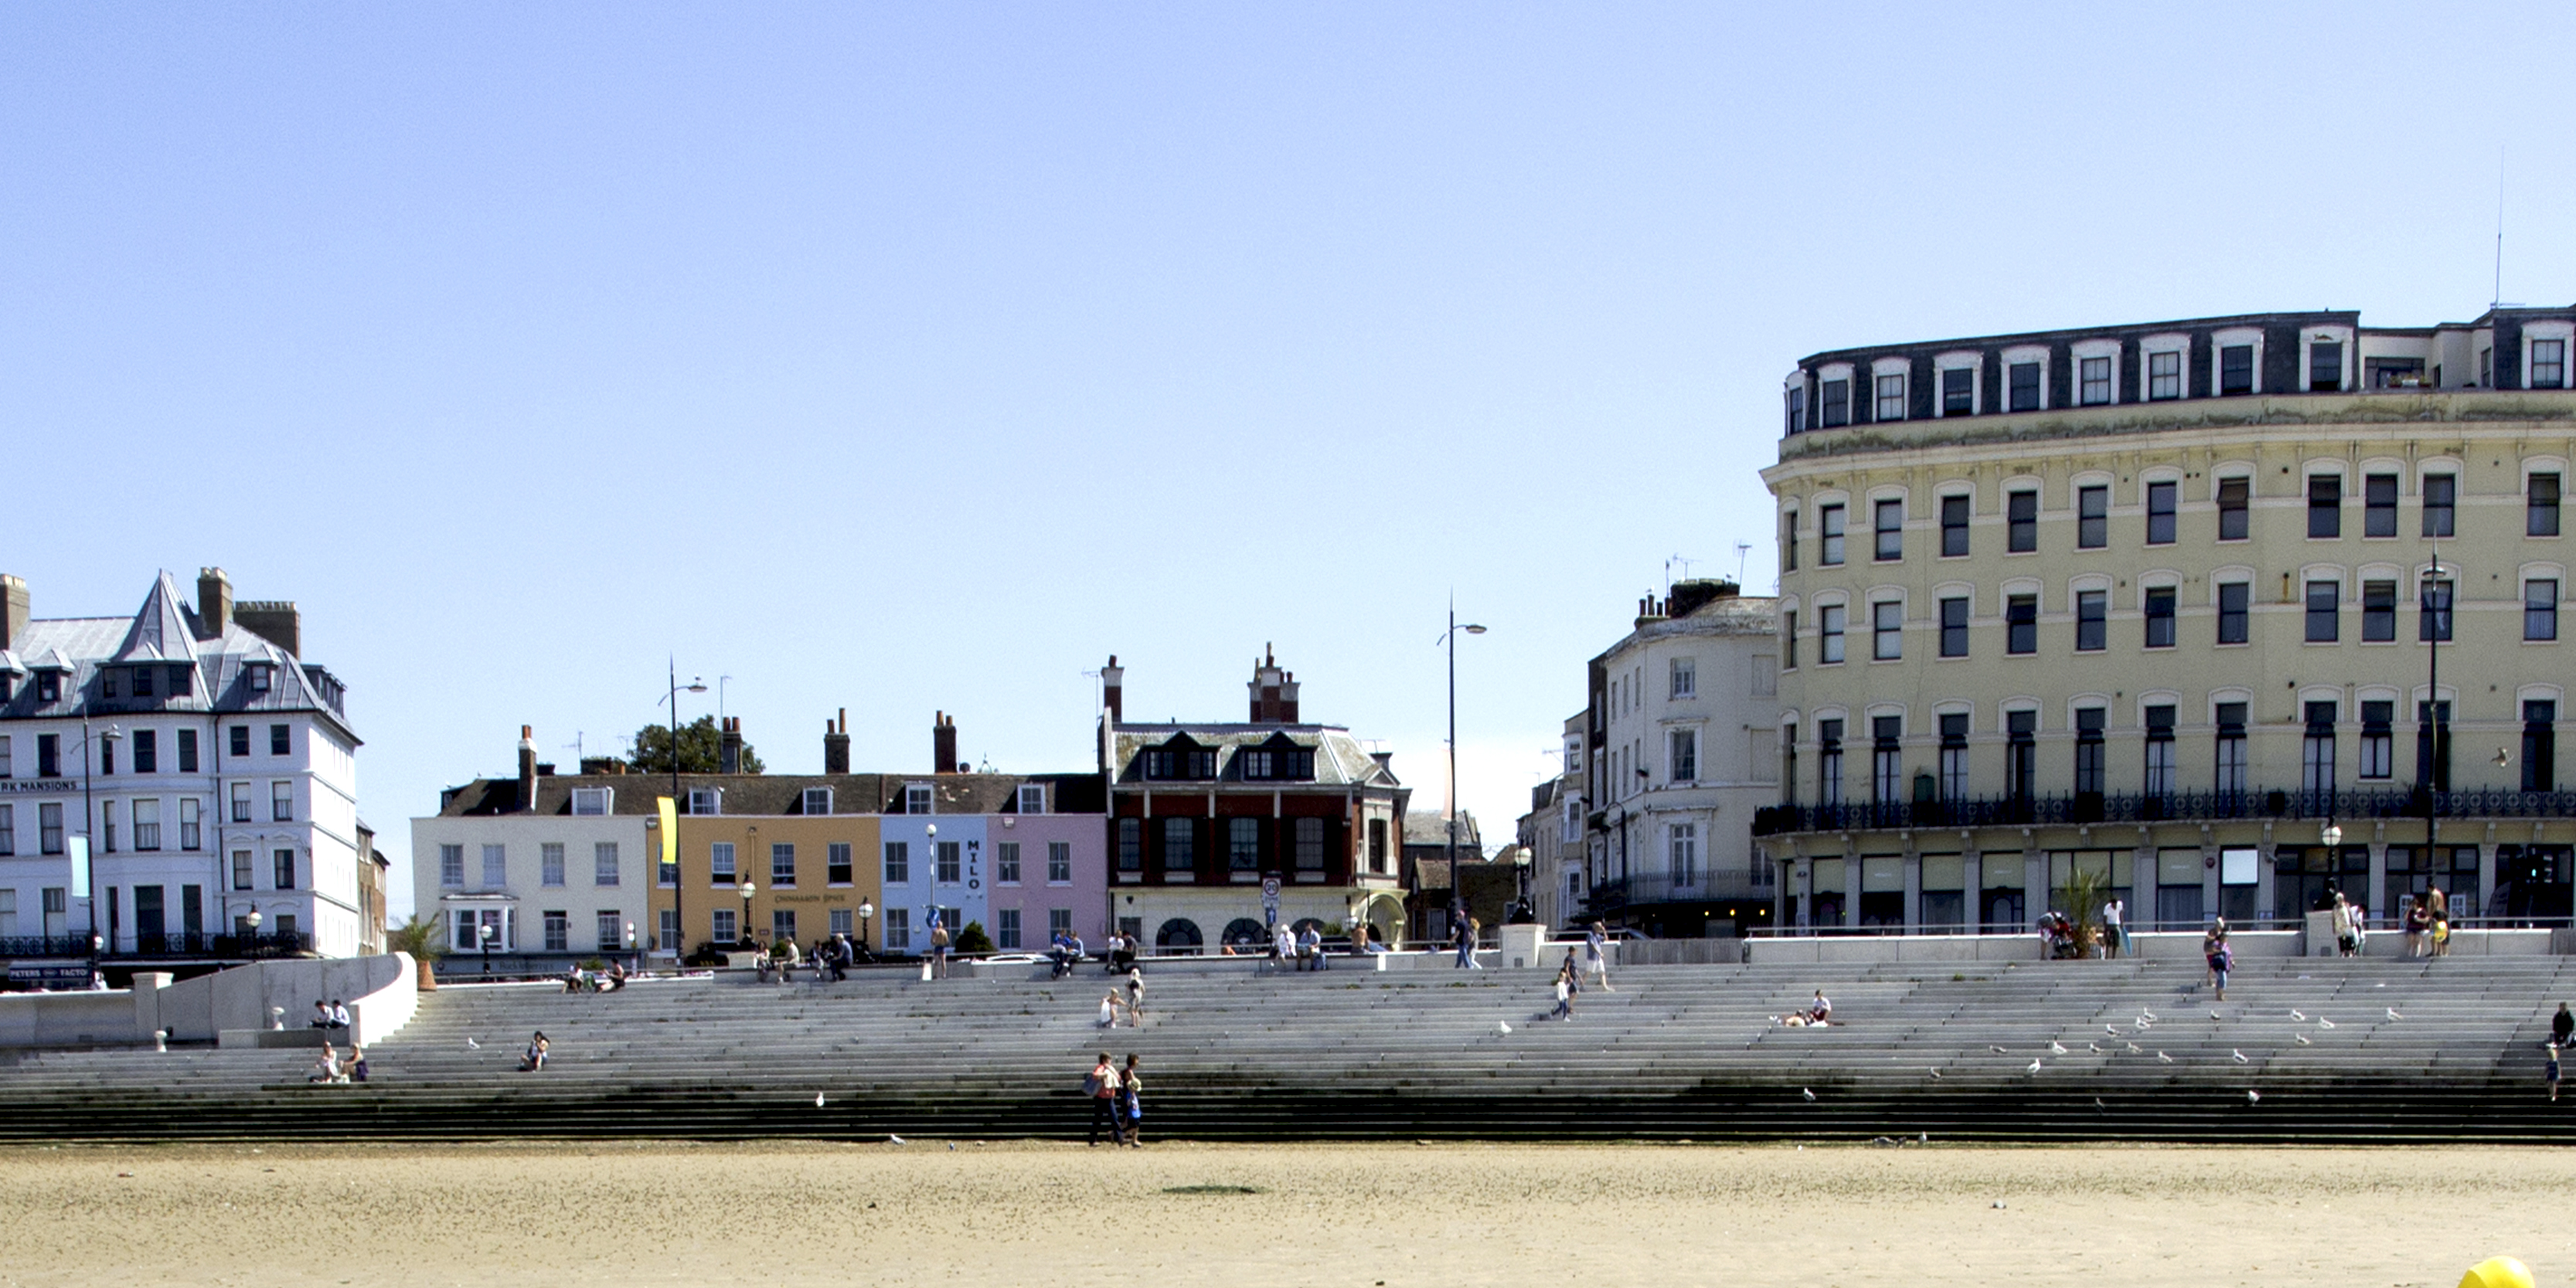 The hottest property market outside London in 2015? Margate... (read more)